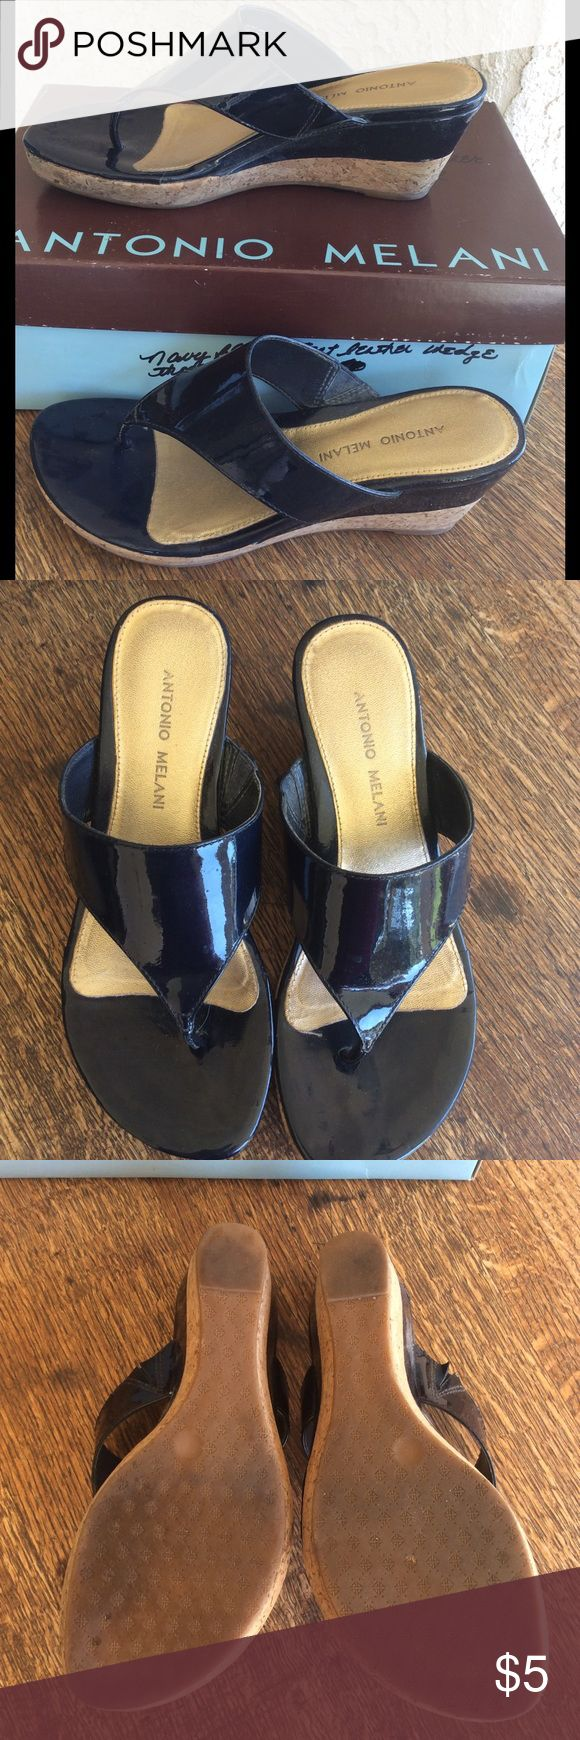 """Antonio Melani Navy Sandals Navy patent leather sandals in original box. Heel is 2.5"""". Mark on the patent leather on inside of left shoe. This item must be purchased as a part of a bundle. May not be purchased individually. ANTONIO MELANI Shoes Sandals"""